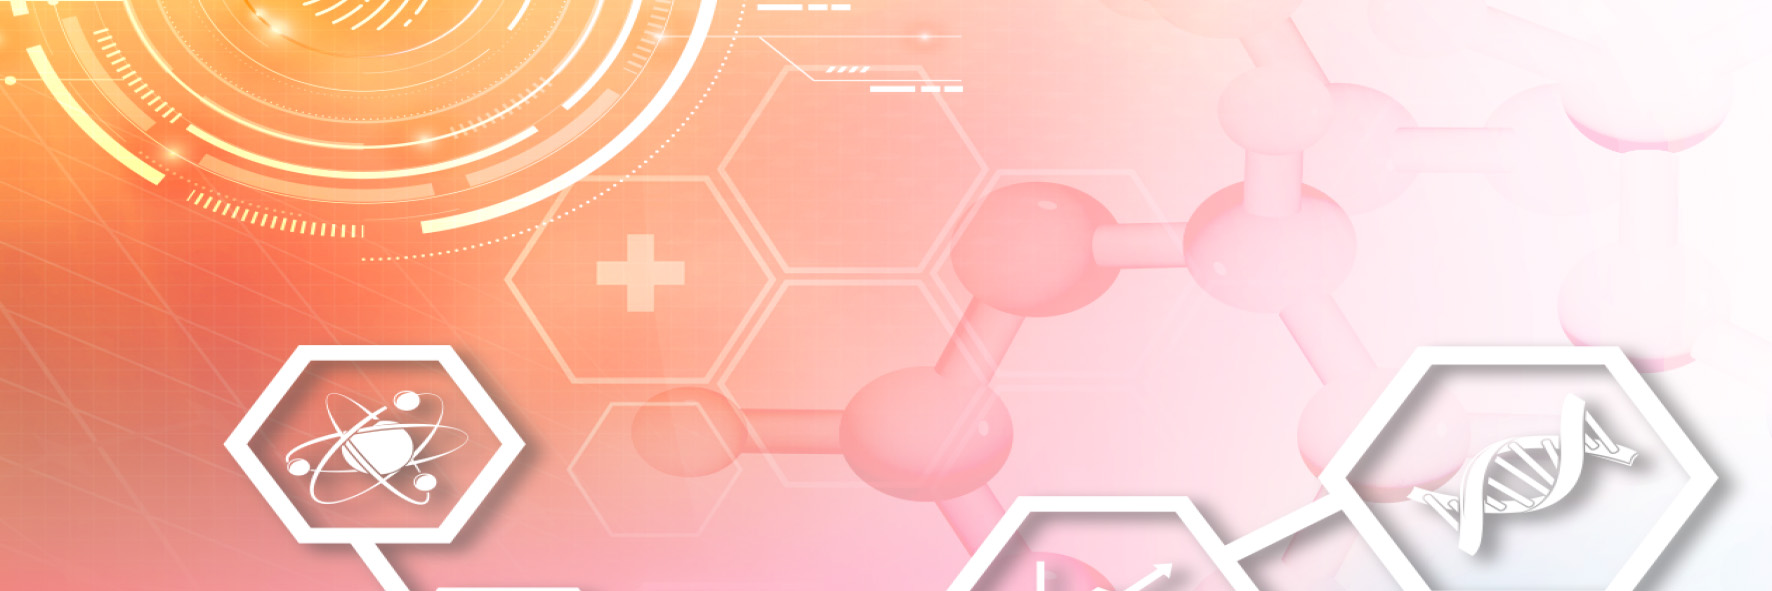 Banner Image for NTU-Duke-NUS Medicine Pathway